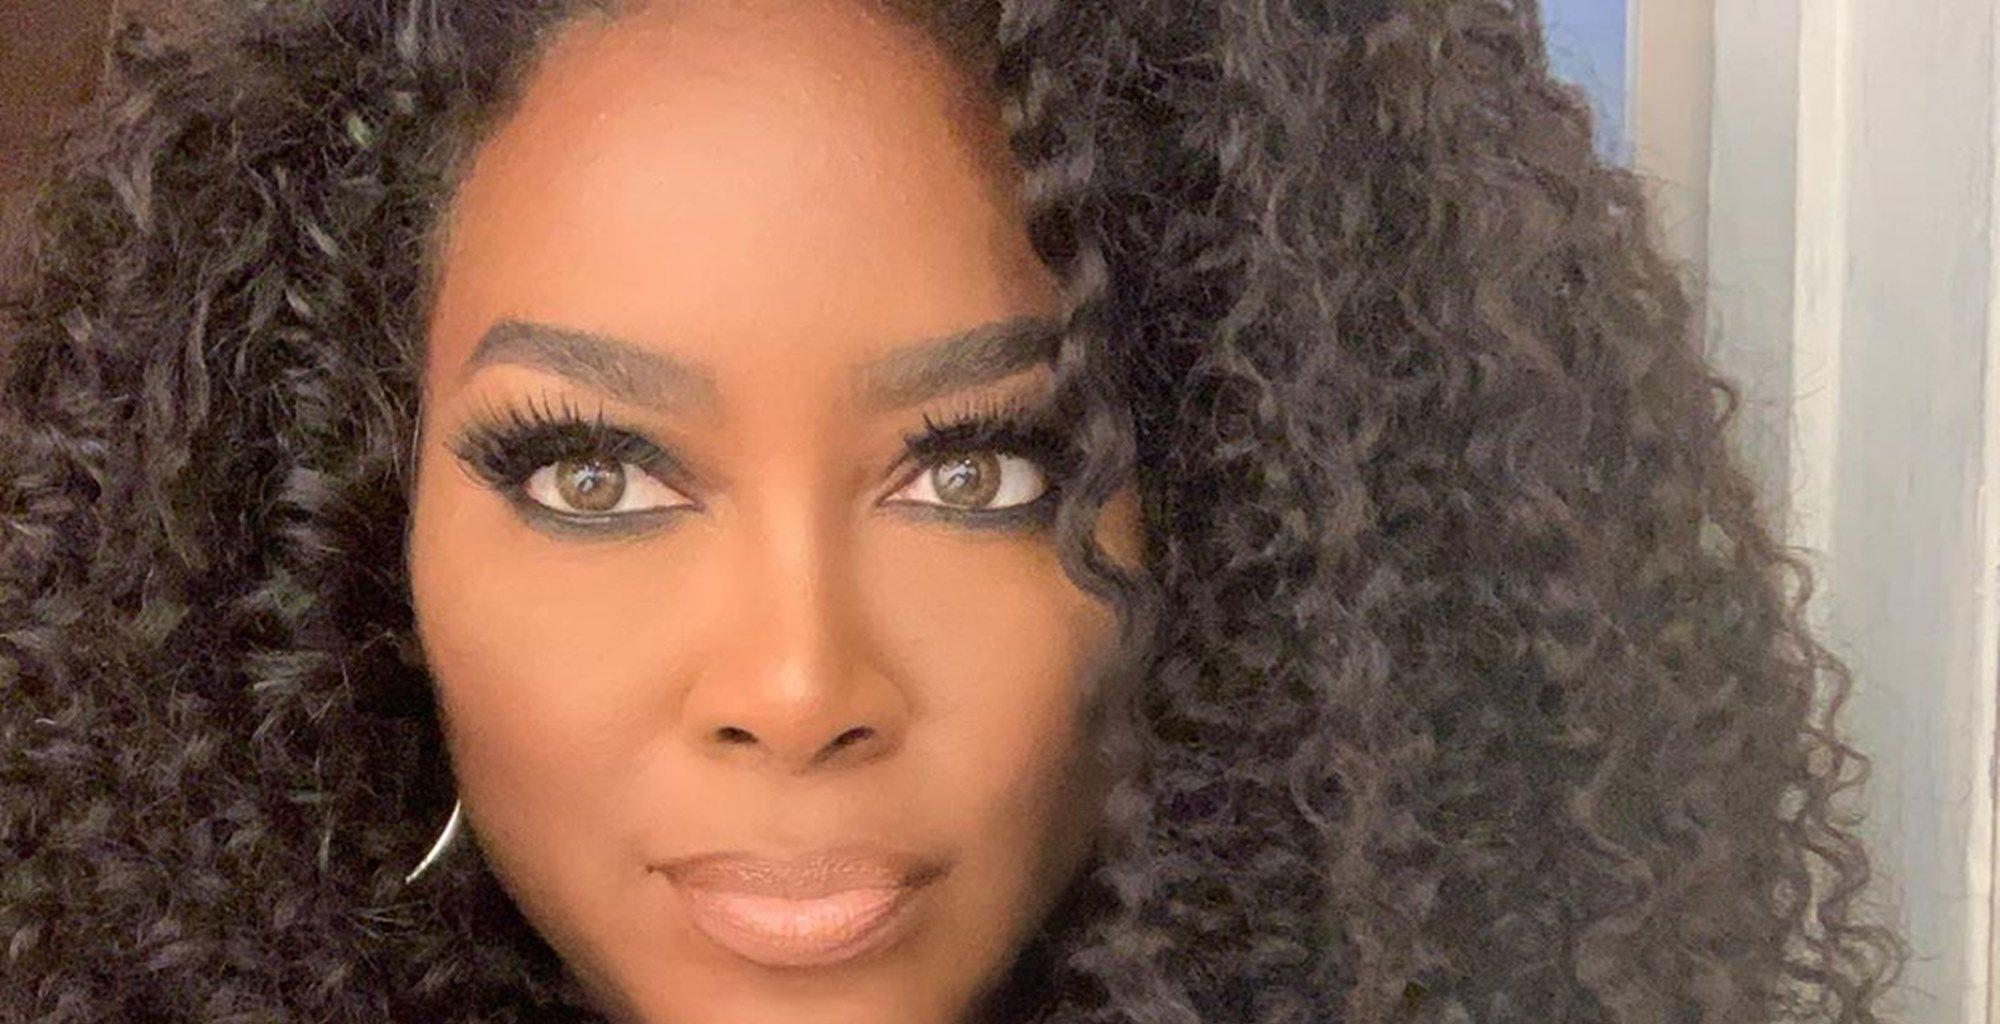 Kenya Moore Reveals The Empire She's Building For Her Daughter, Brooklyn Daly: 'This Is My Legacy'